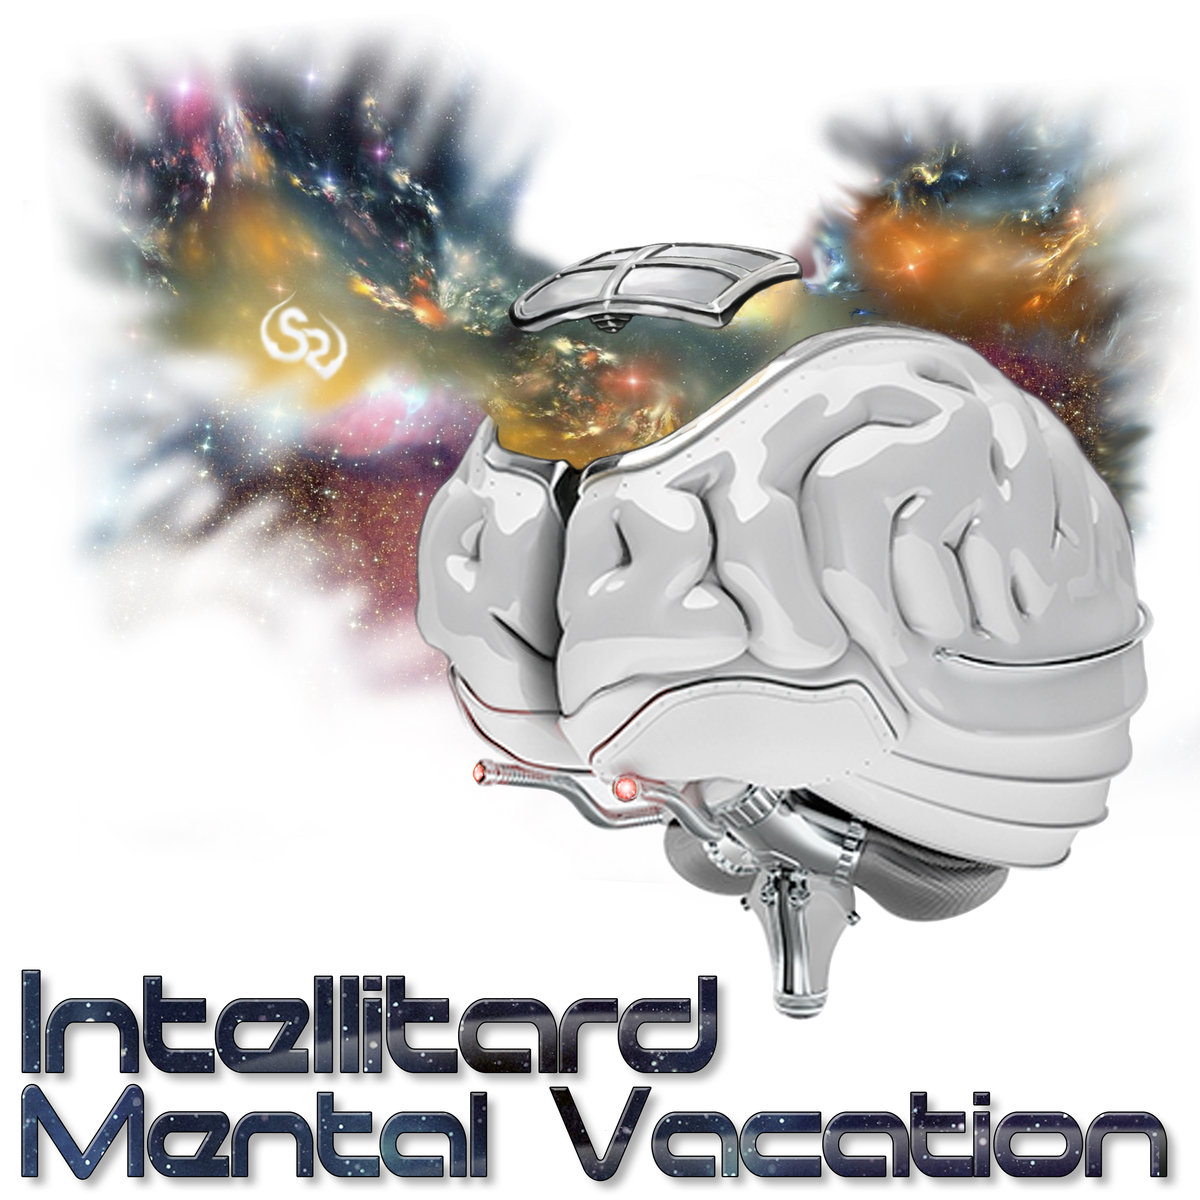 Intellitard - Cameron the Chameleon @ 'Mental Vacation' album (808, bass)